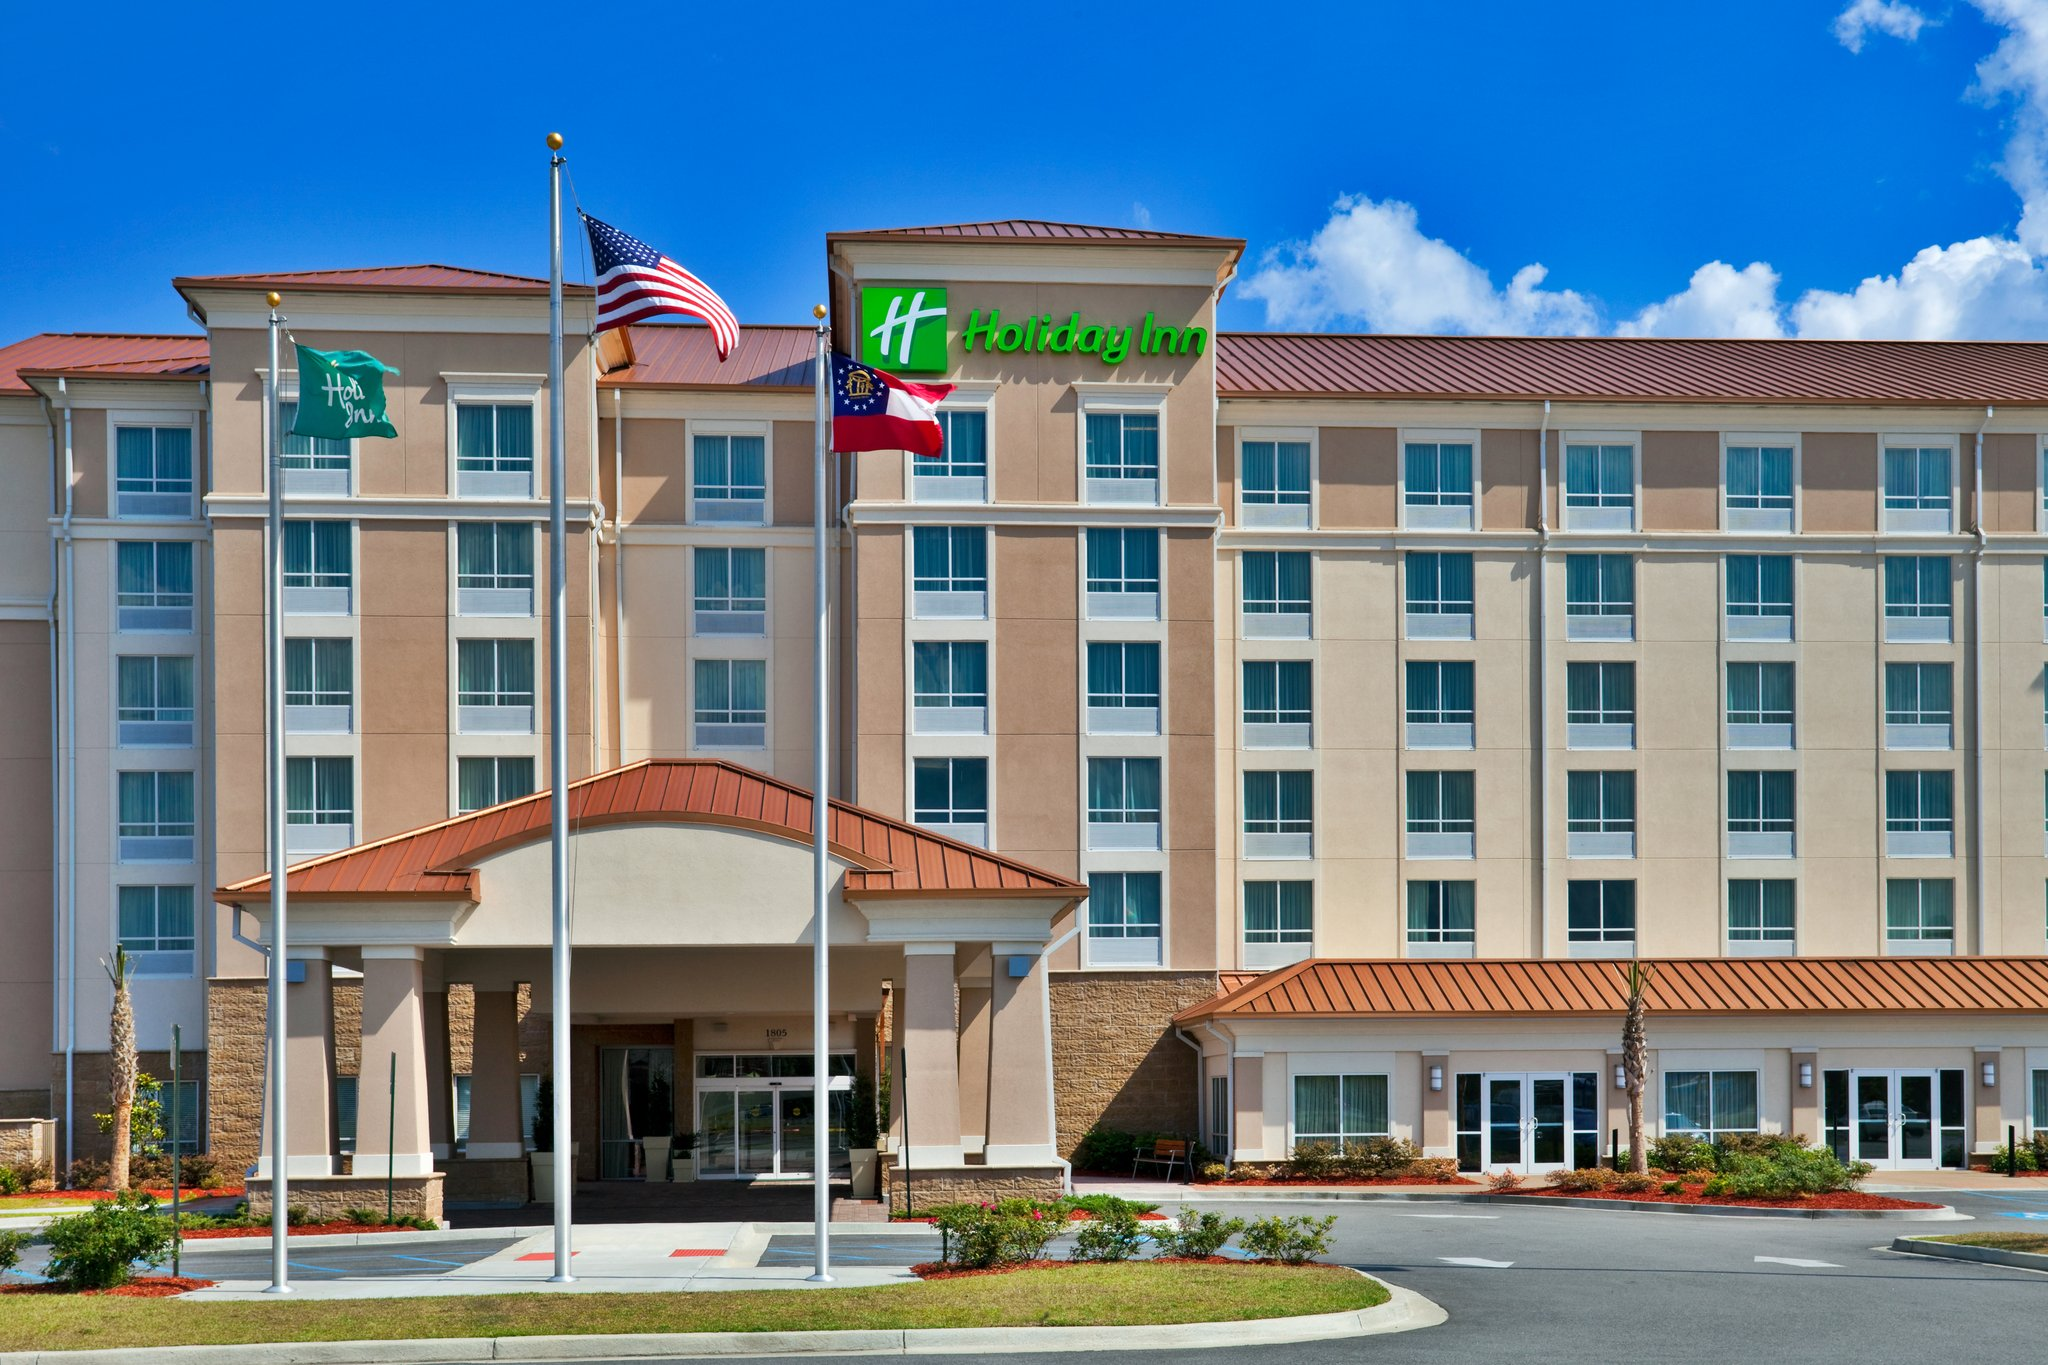 Holiday Inn Hotel & Conference Center